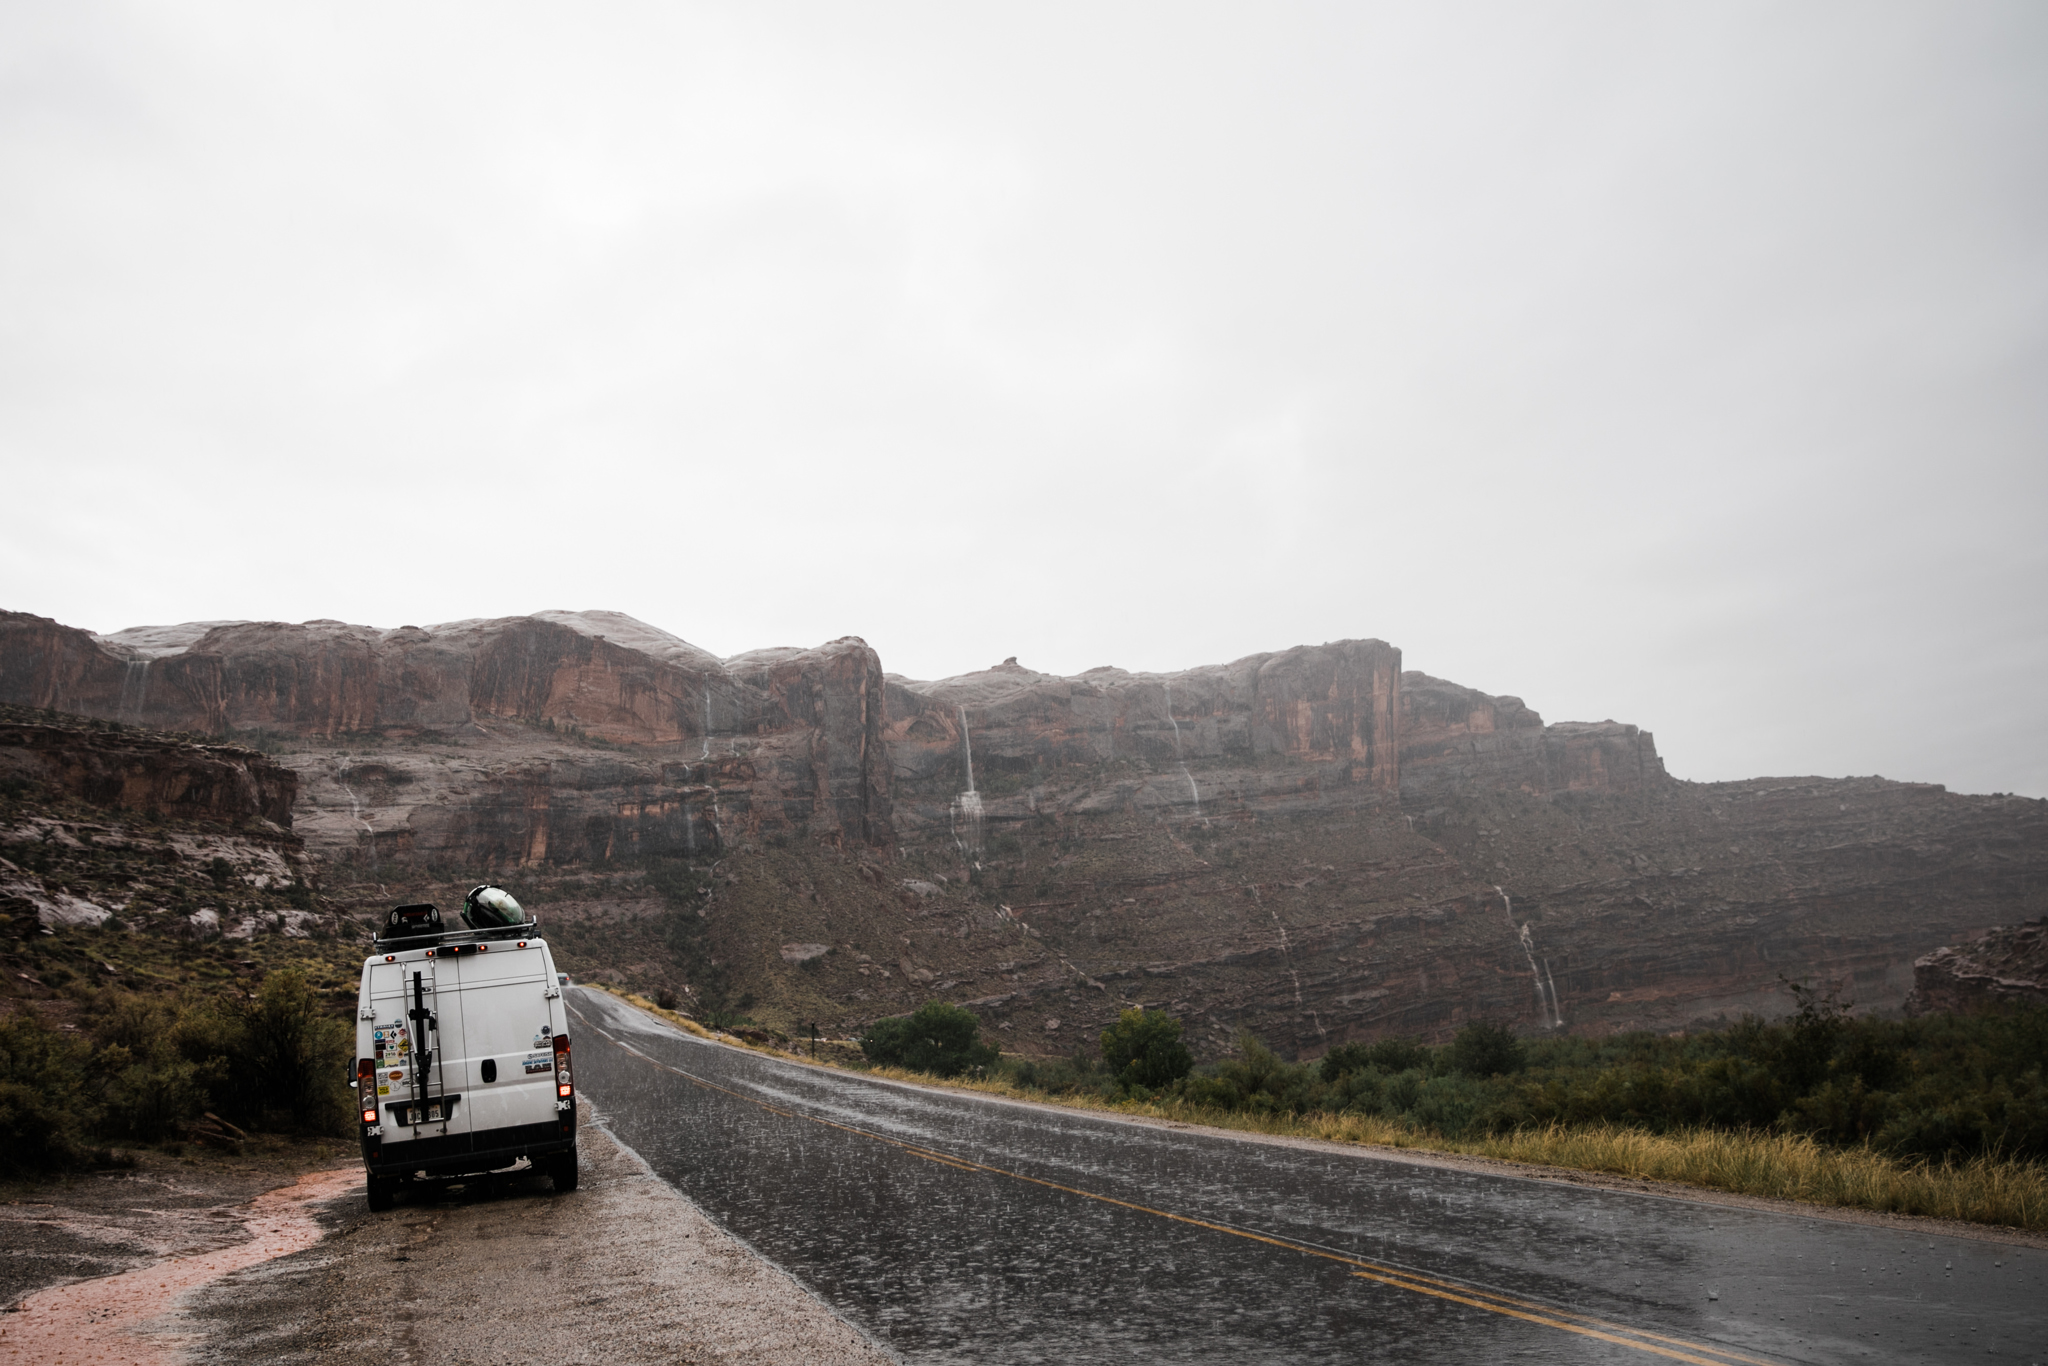 van life in moab utah | utah and california adventure elopement photographers | the hearnes adventure photography | www.thehearnes.com